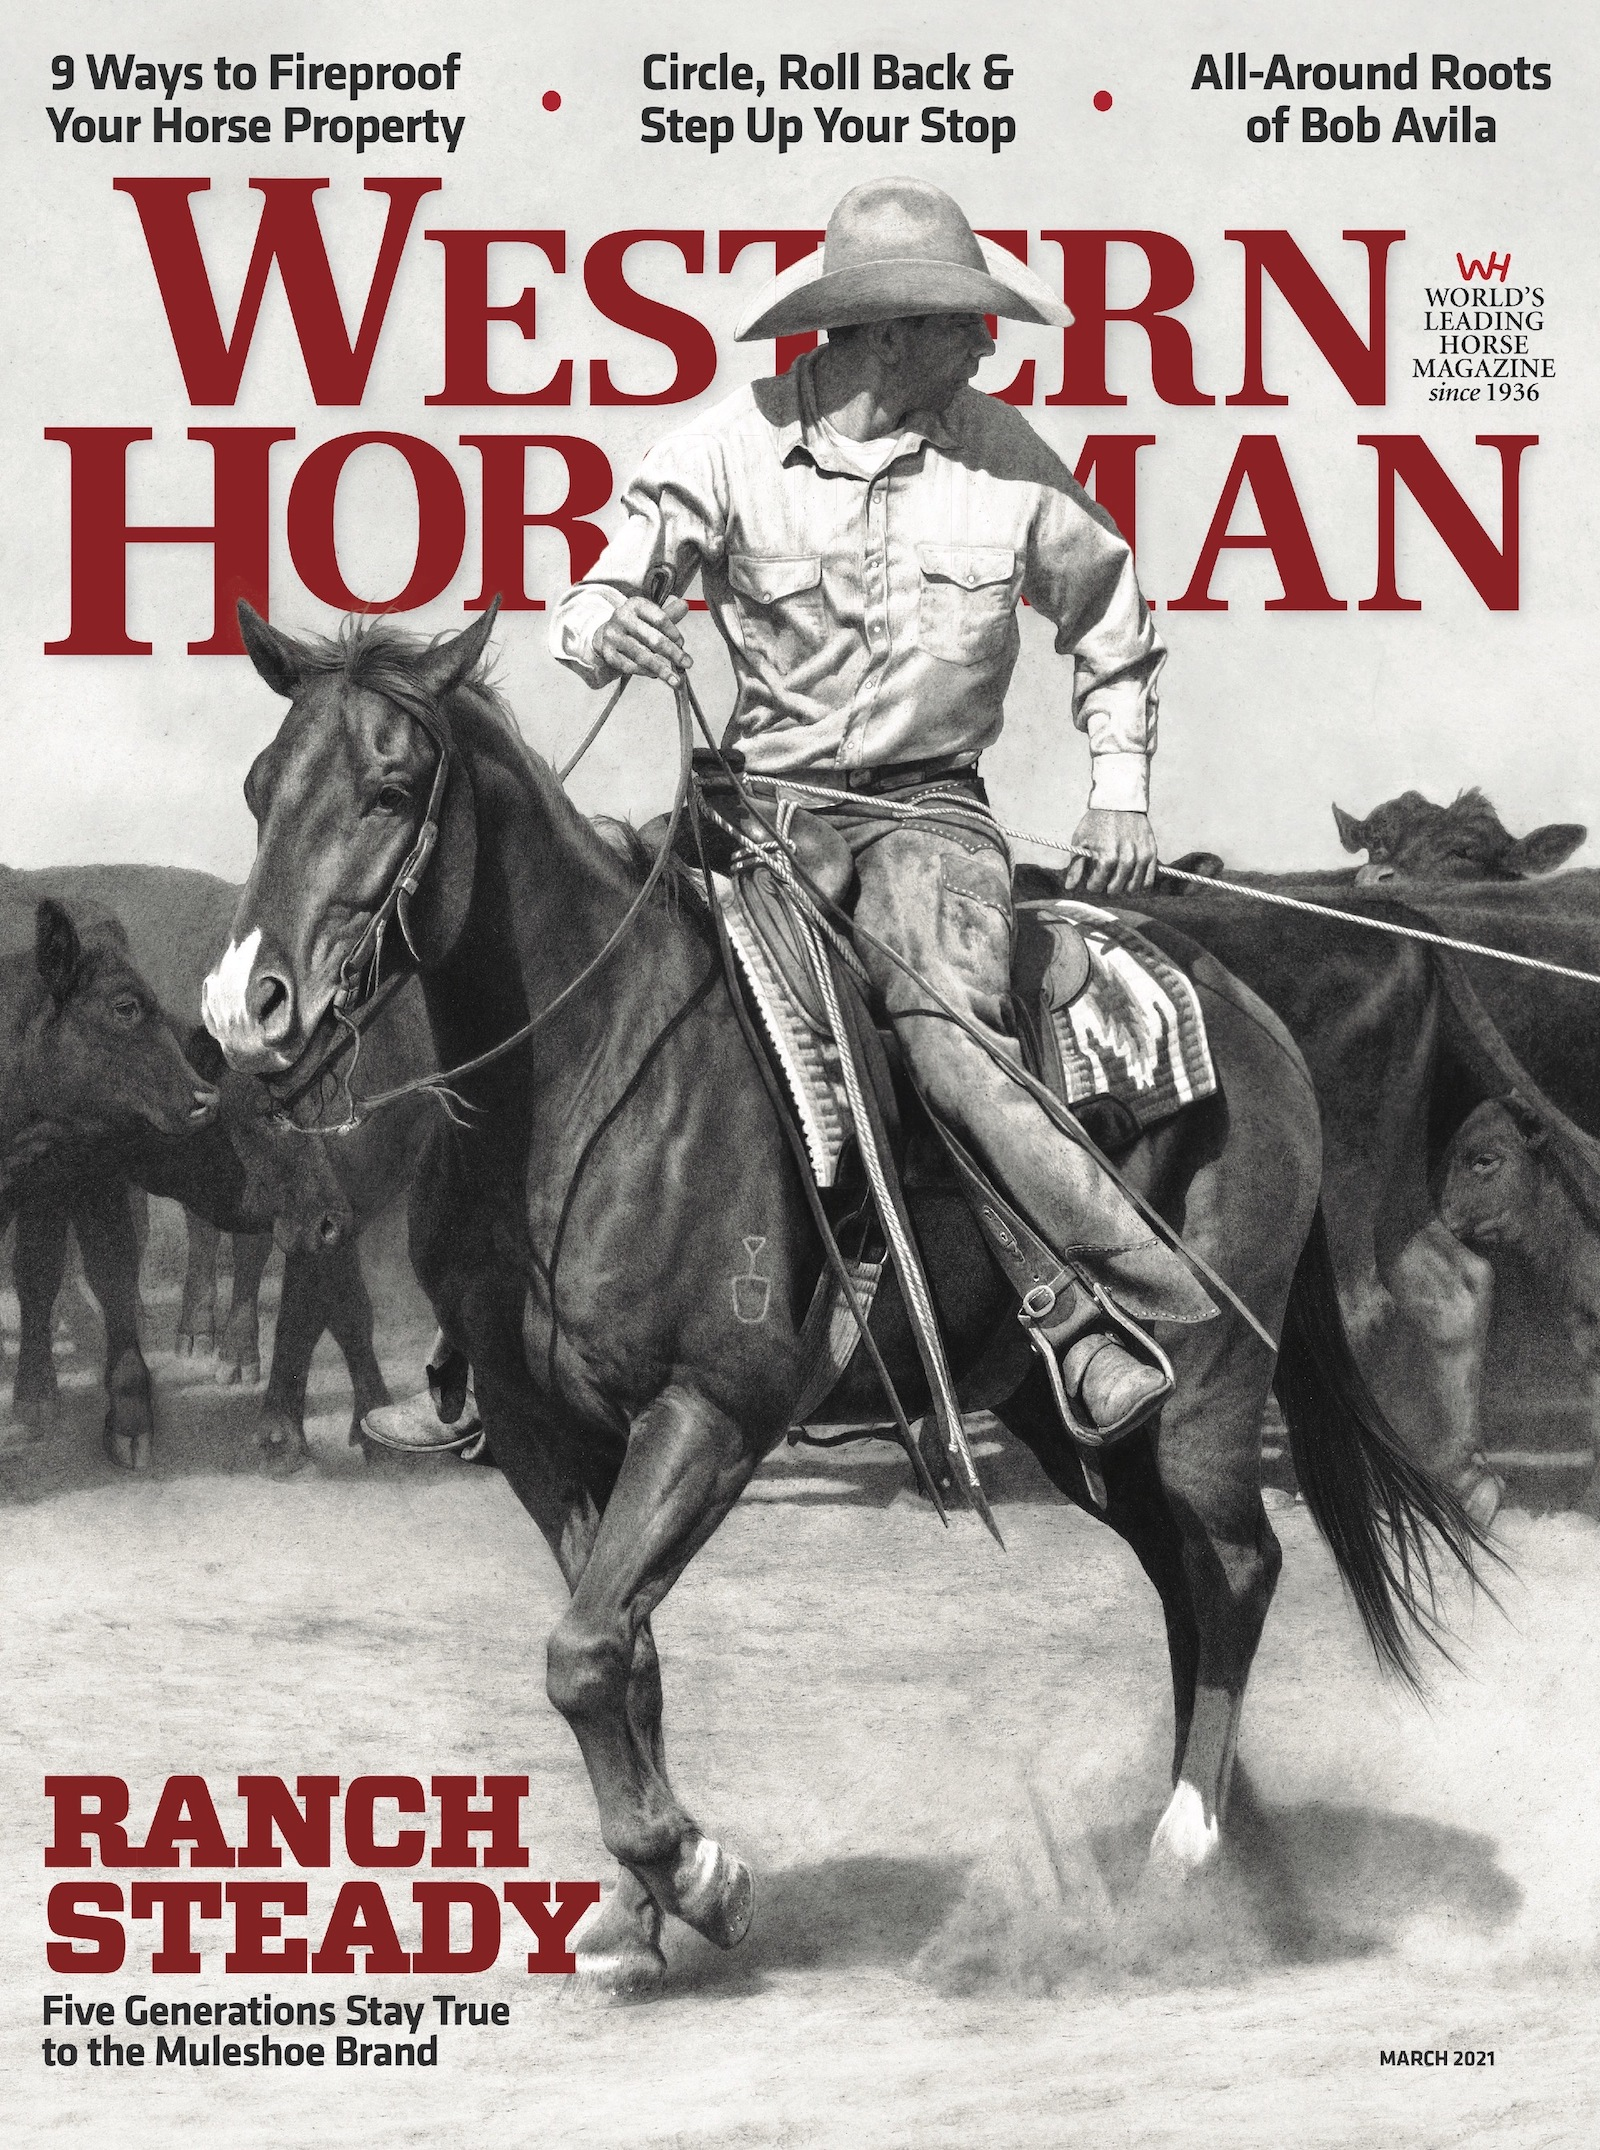 Western Horseman magazine March 2021 cover